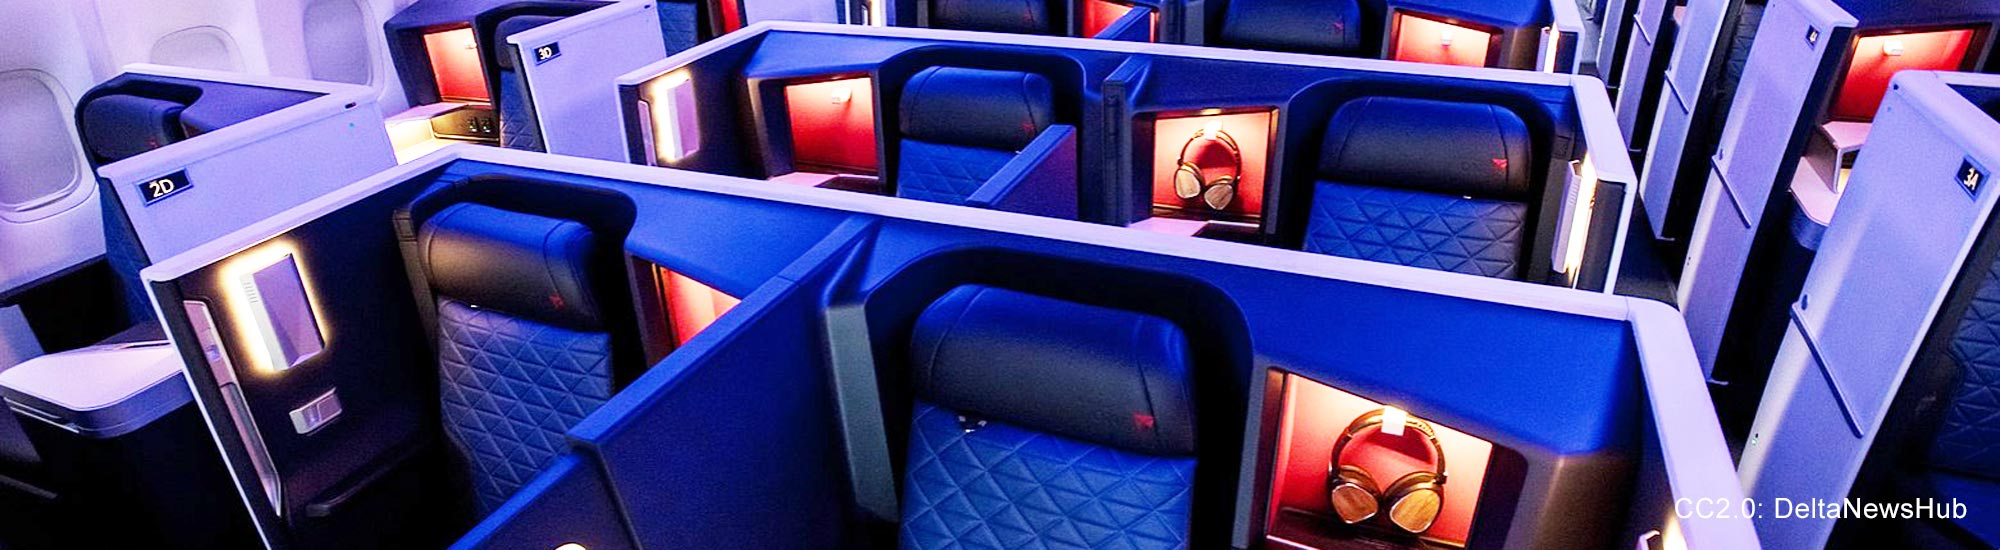 How to Save Money on Business-Class Airfare